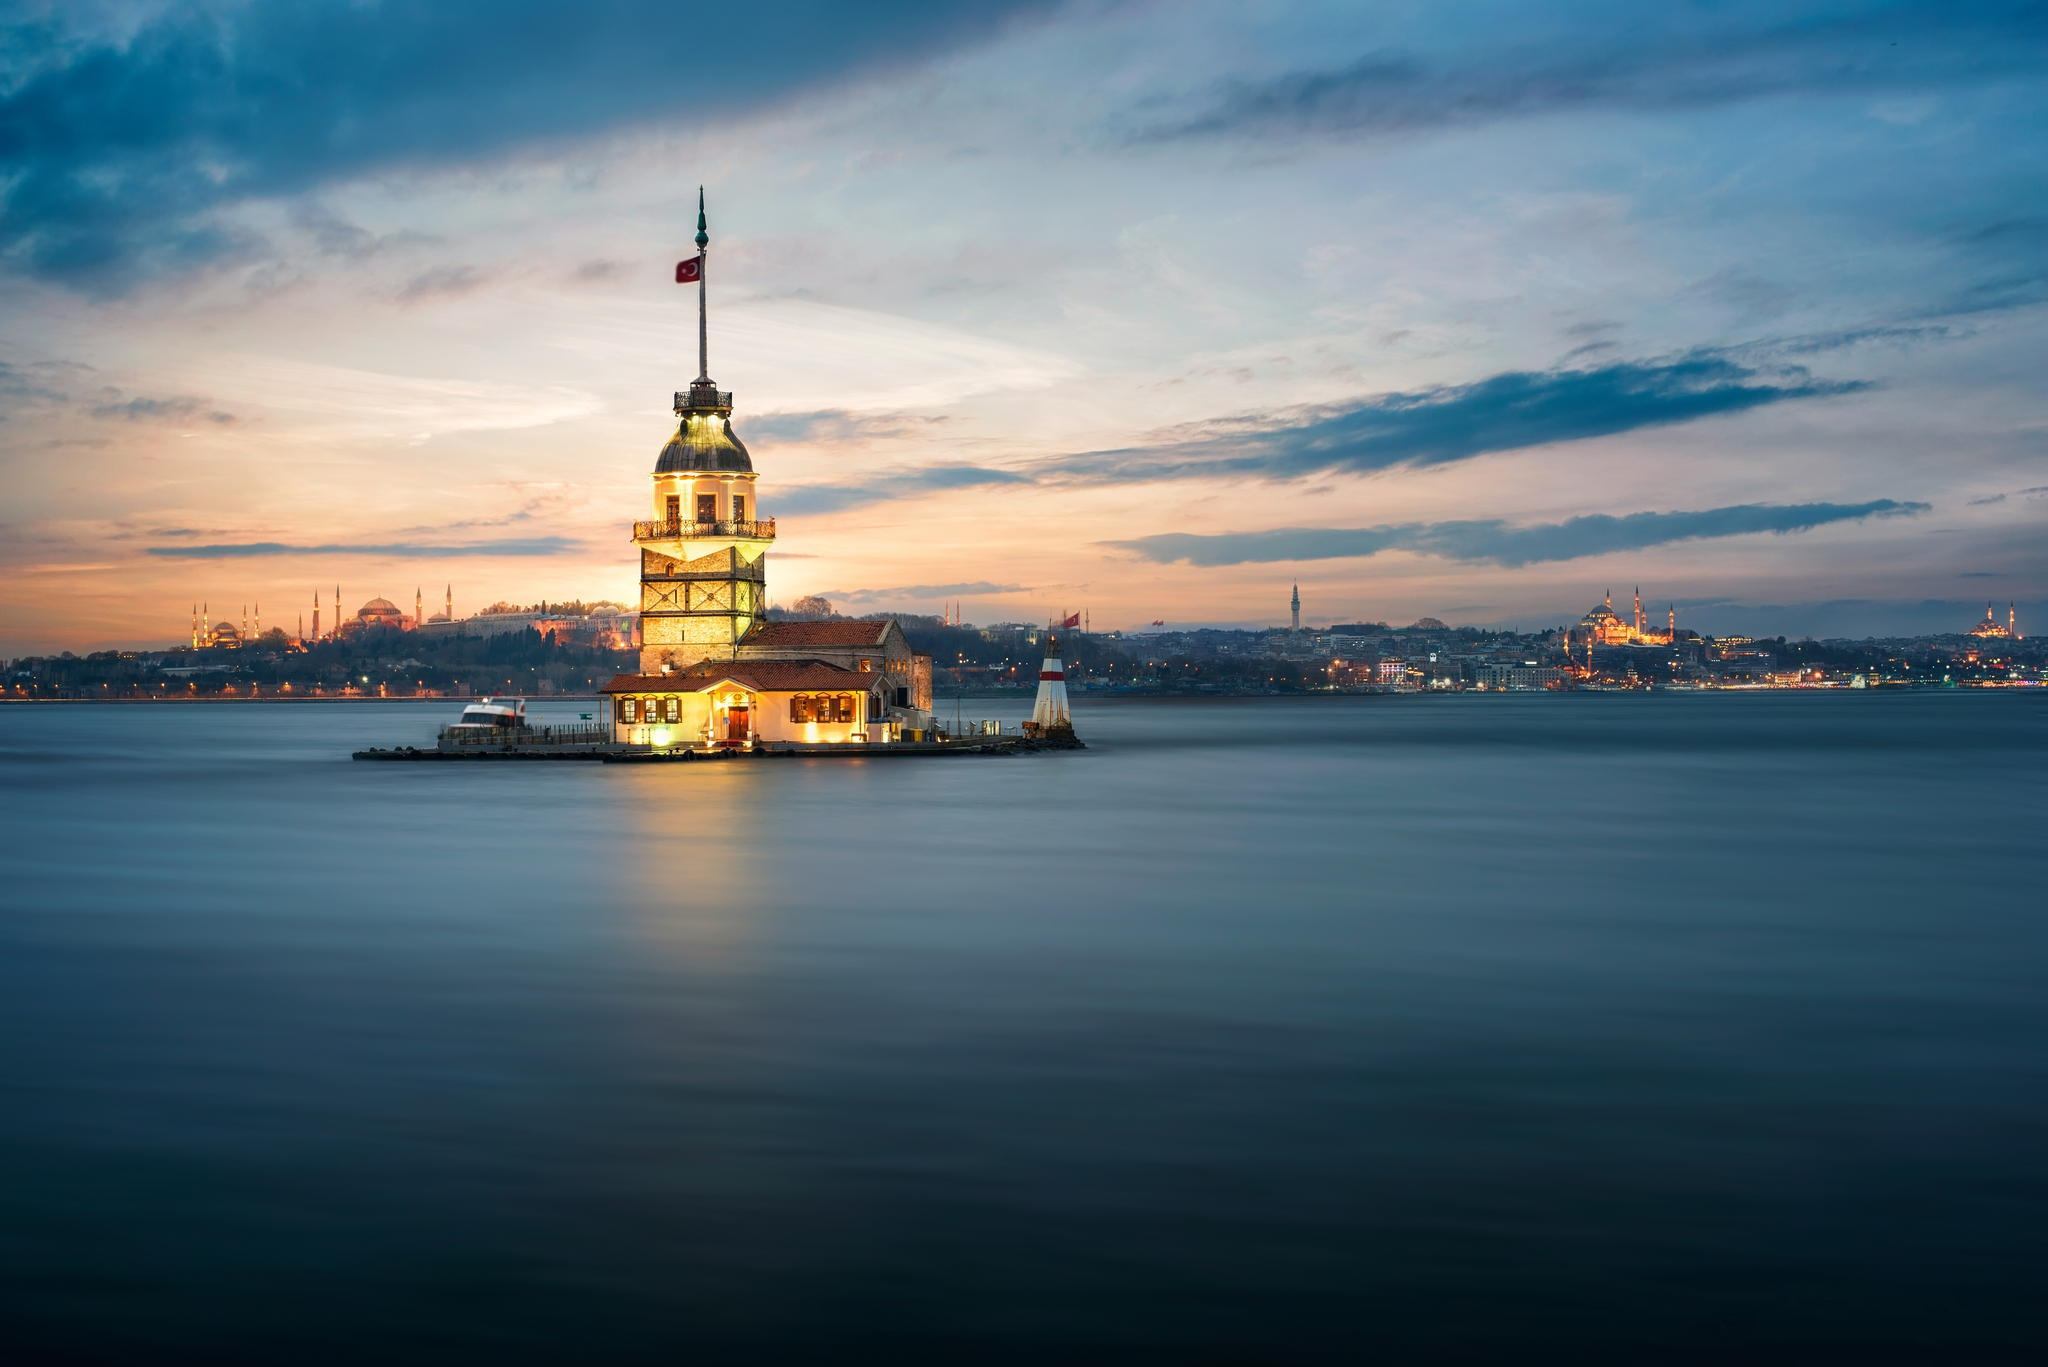 Istanbul full hd wallpaper and background image 2048x1367 id 591850 - Photo of wallpaper ...